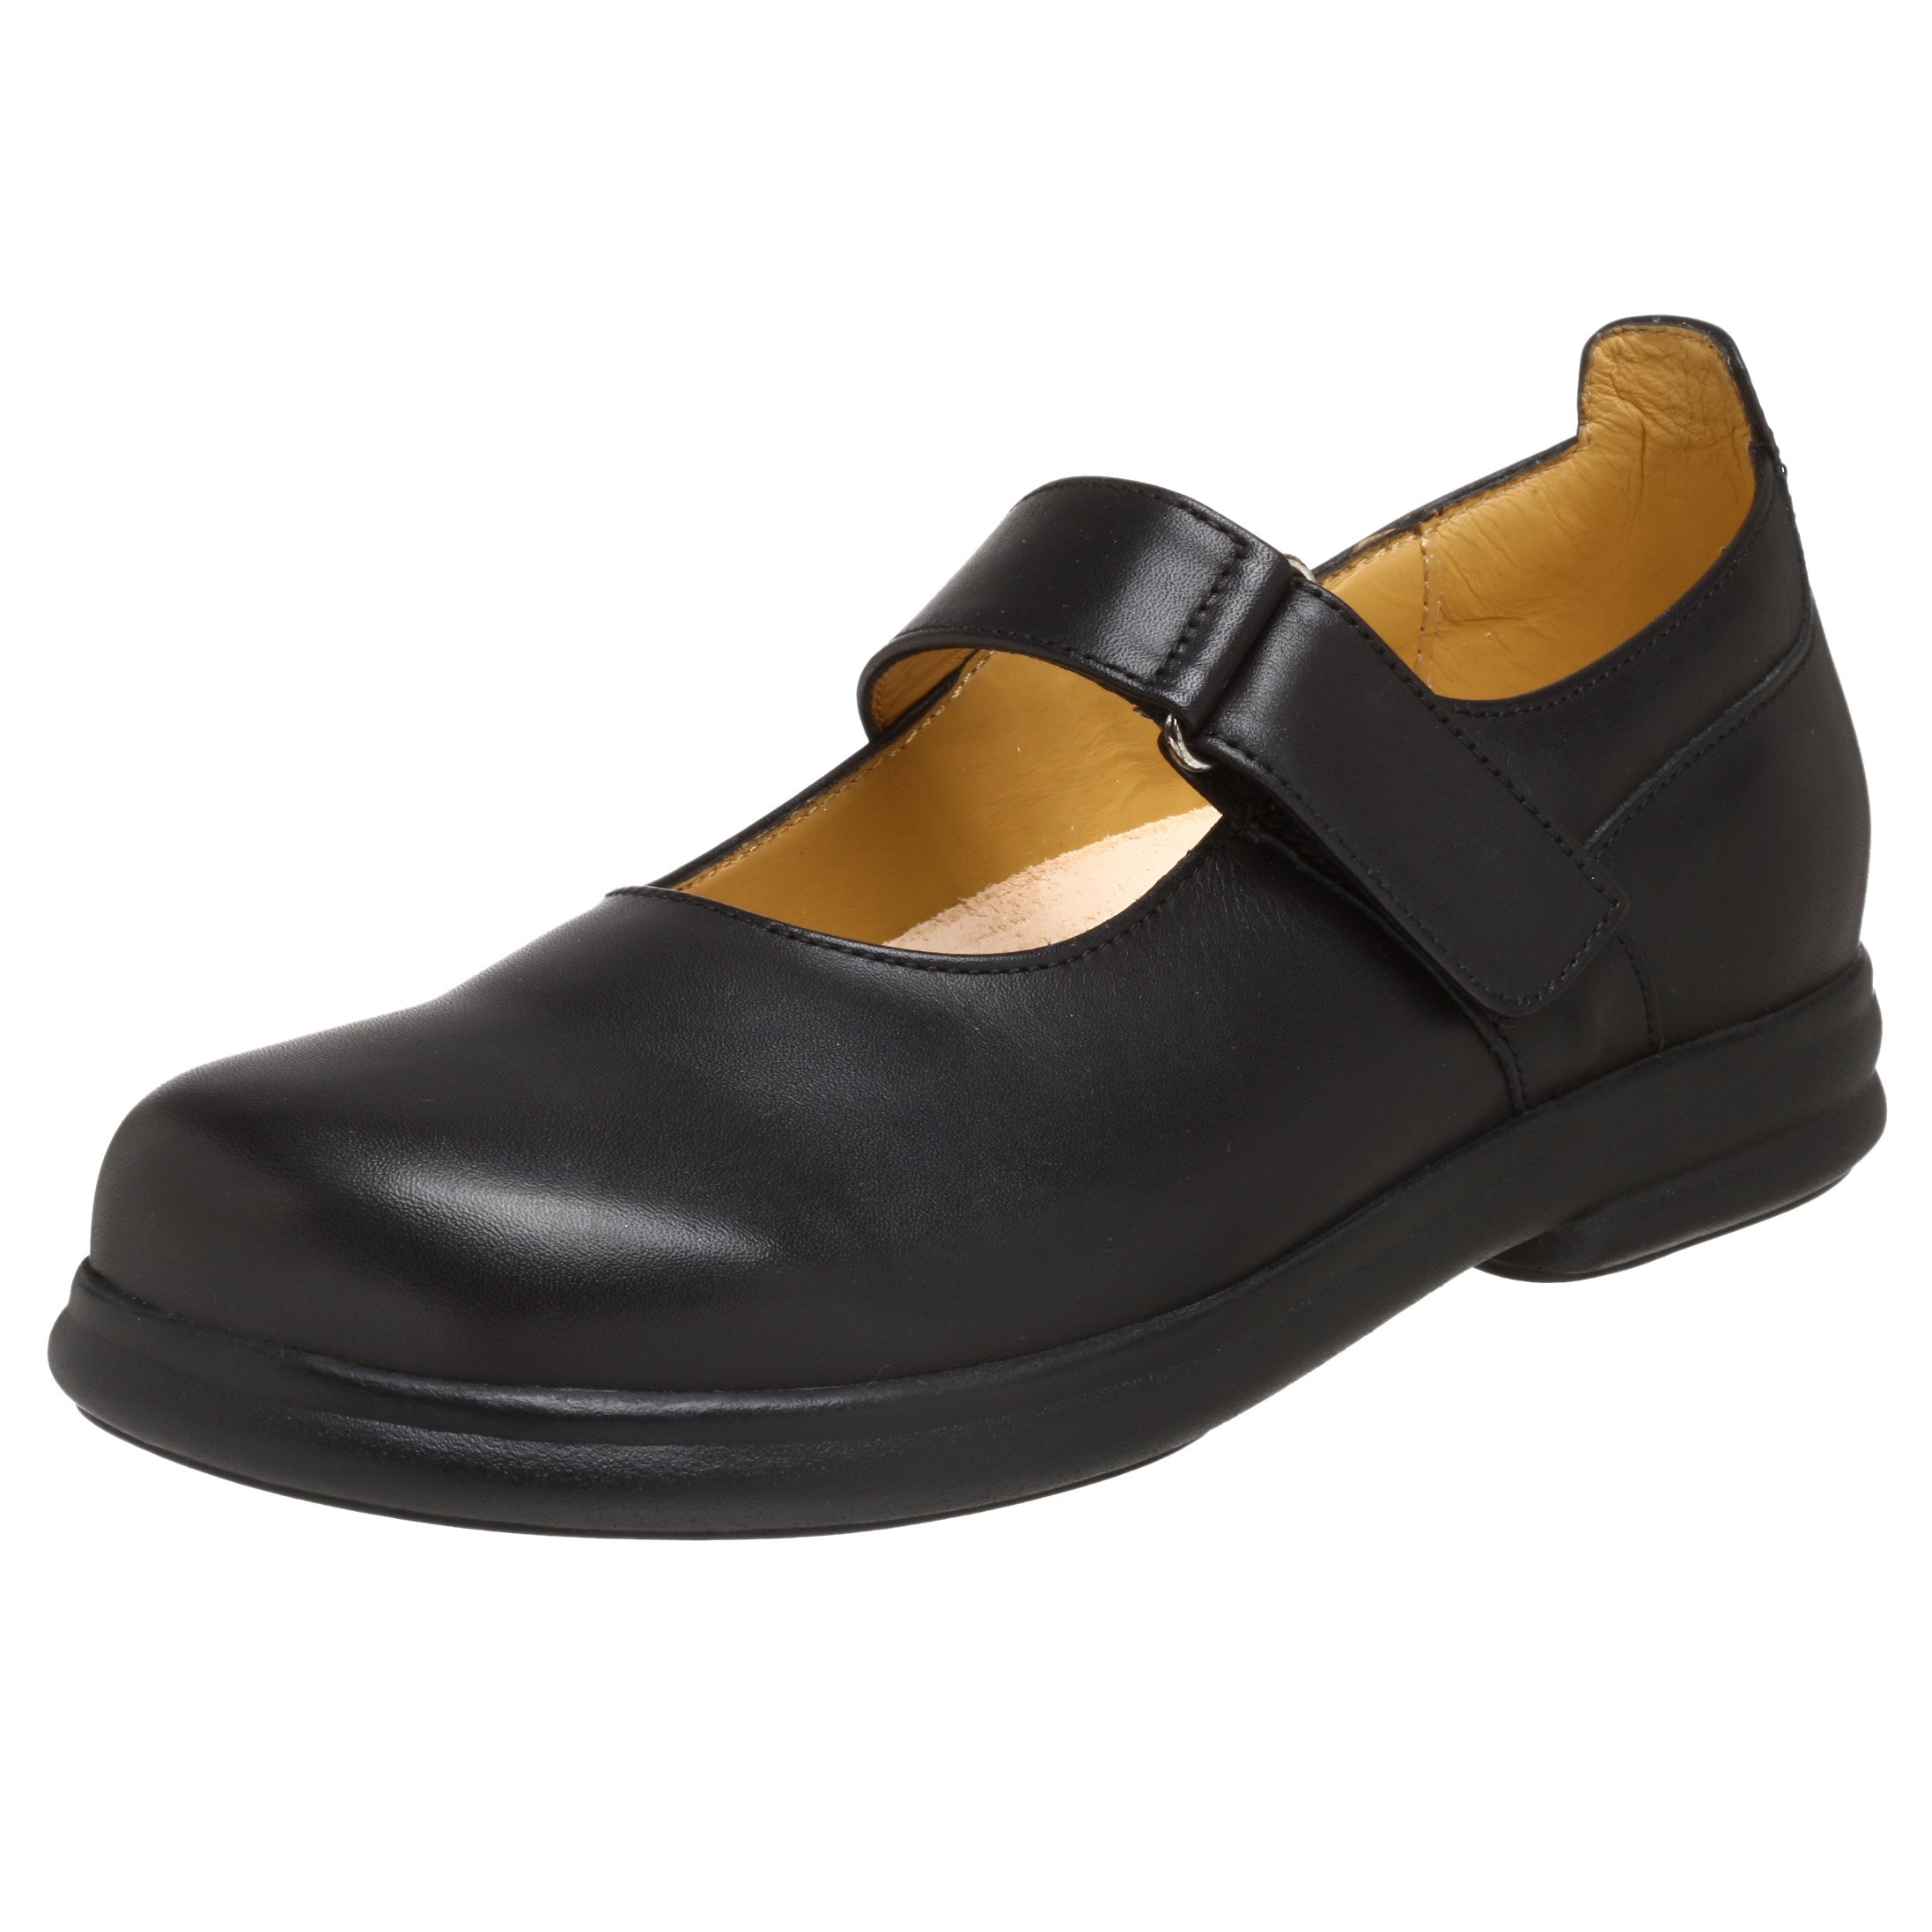 Footprints Women's Annapolis Mary Janes,Black Leather,EU 37 W